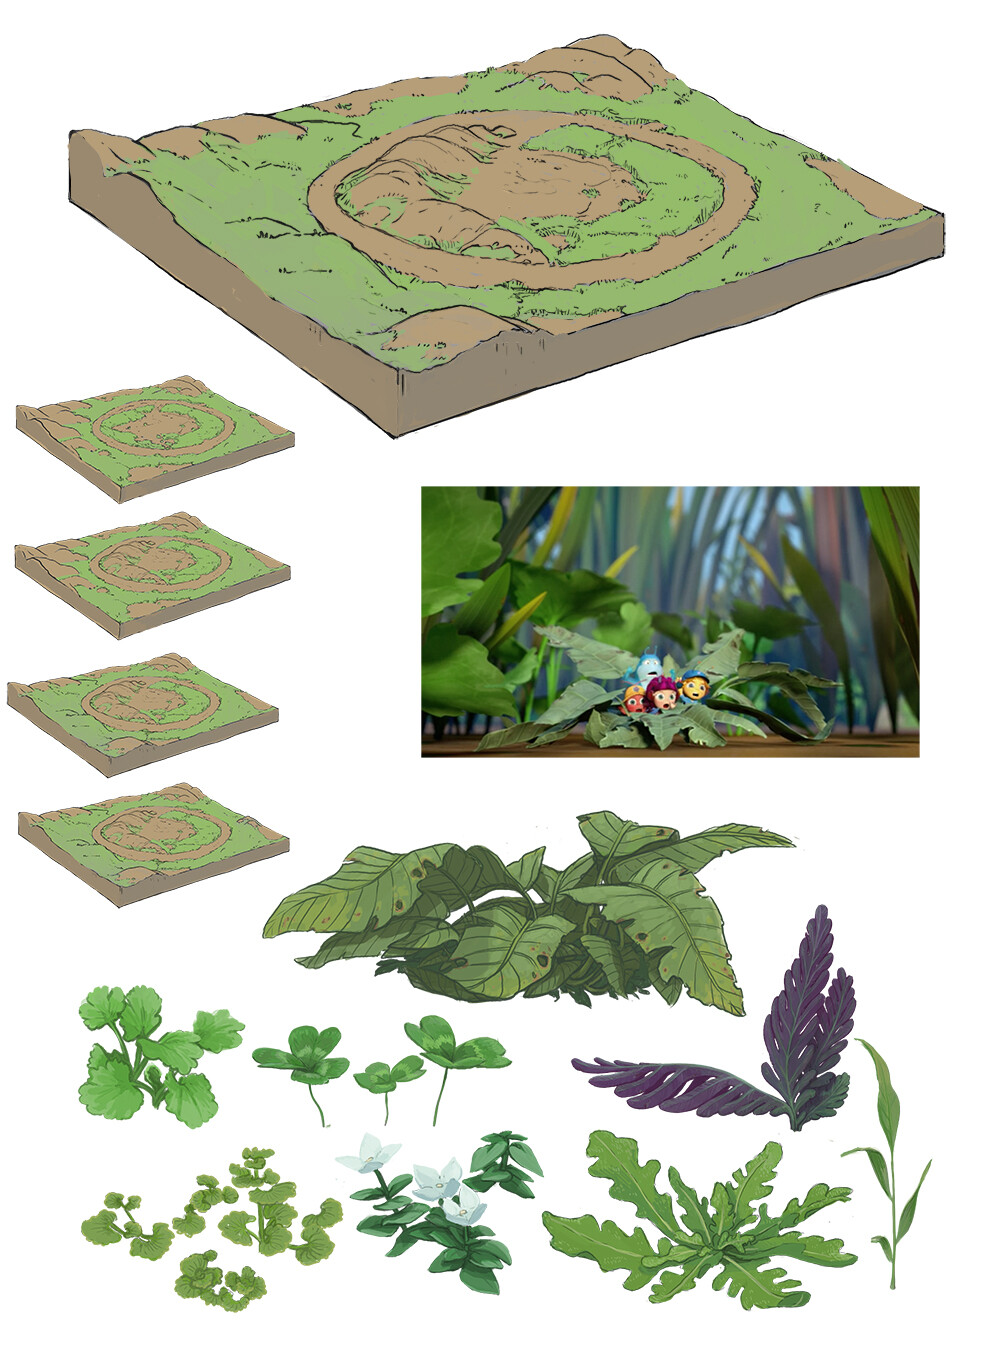 key bg overview design of the full garden set with specialty plants